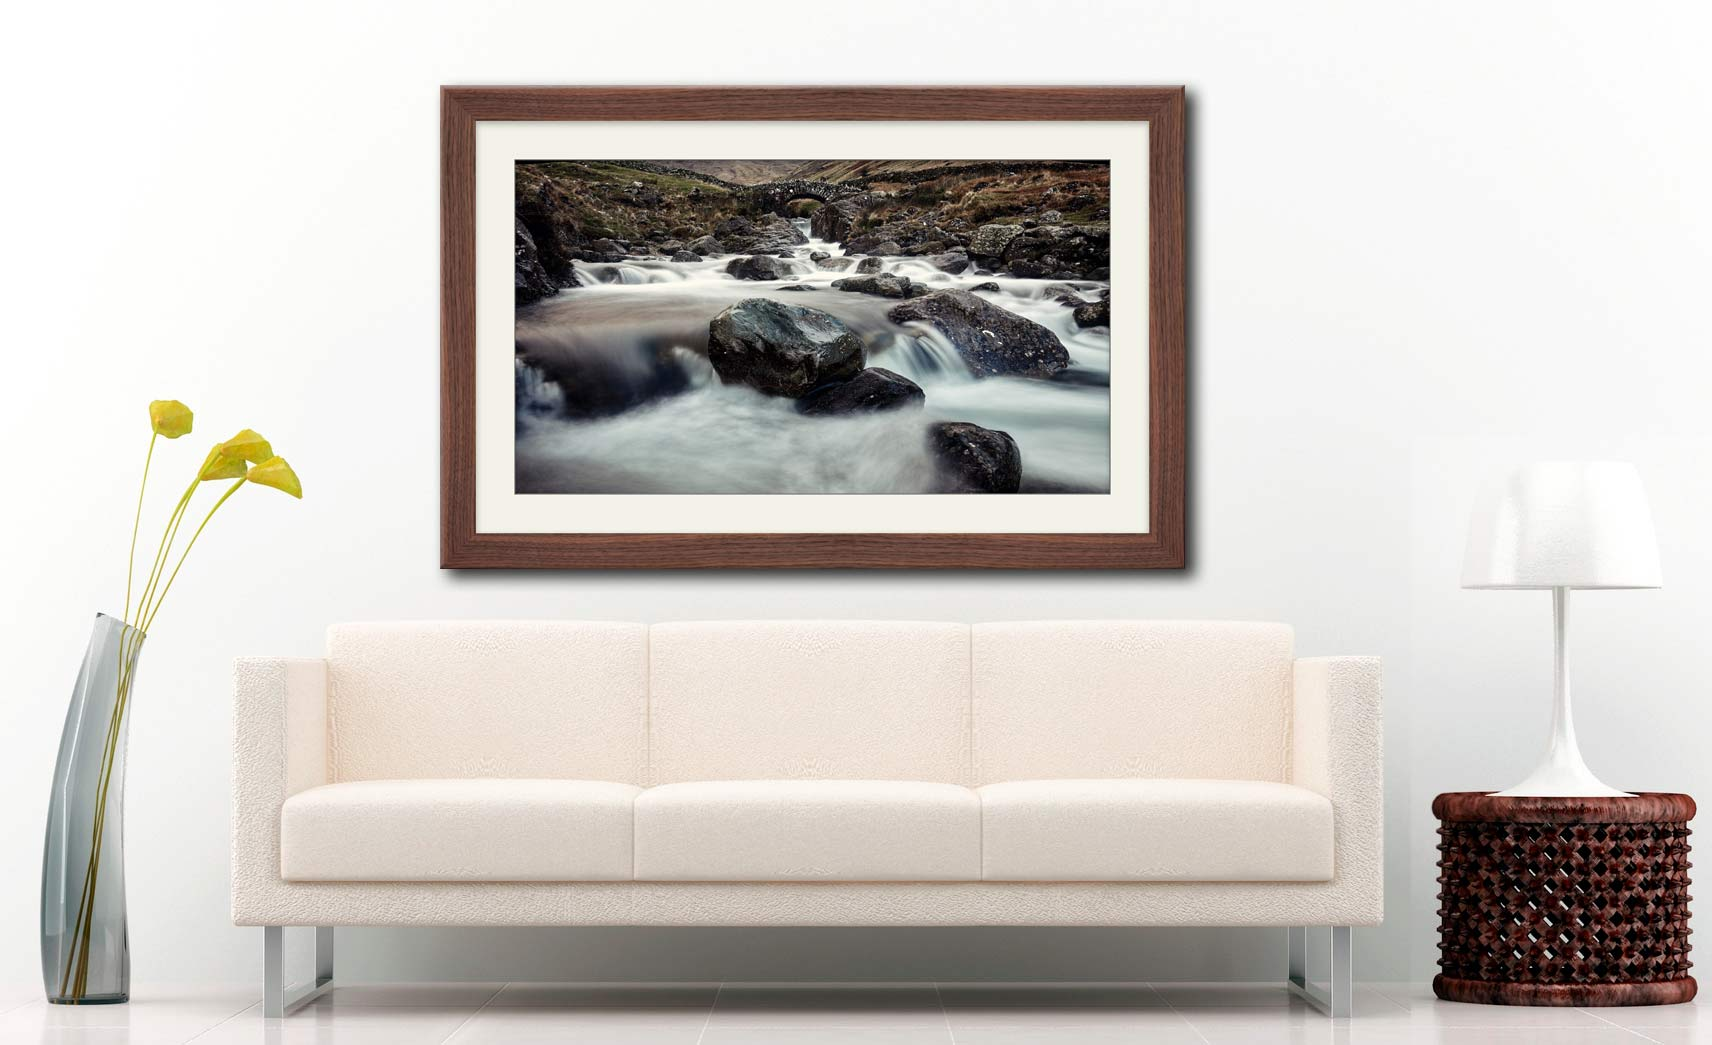 Grains Gill and Stockley Bridge - Framed Print with Mount on Wall